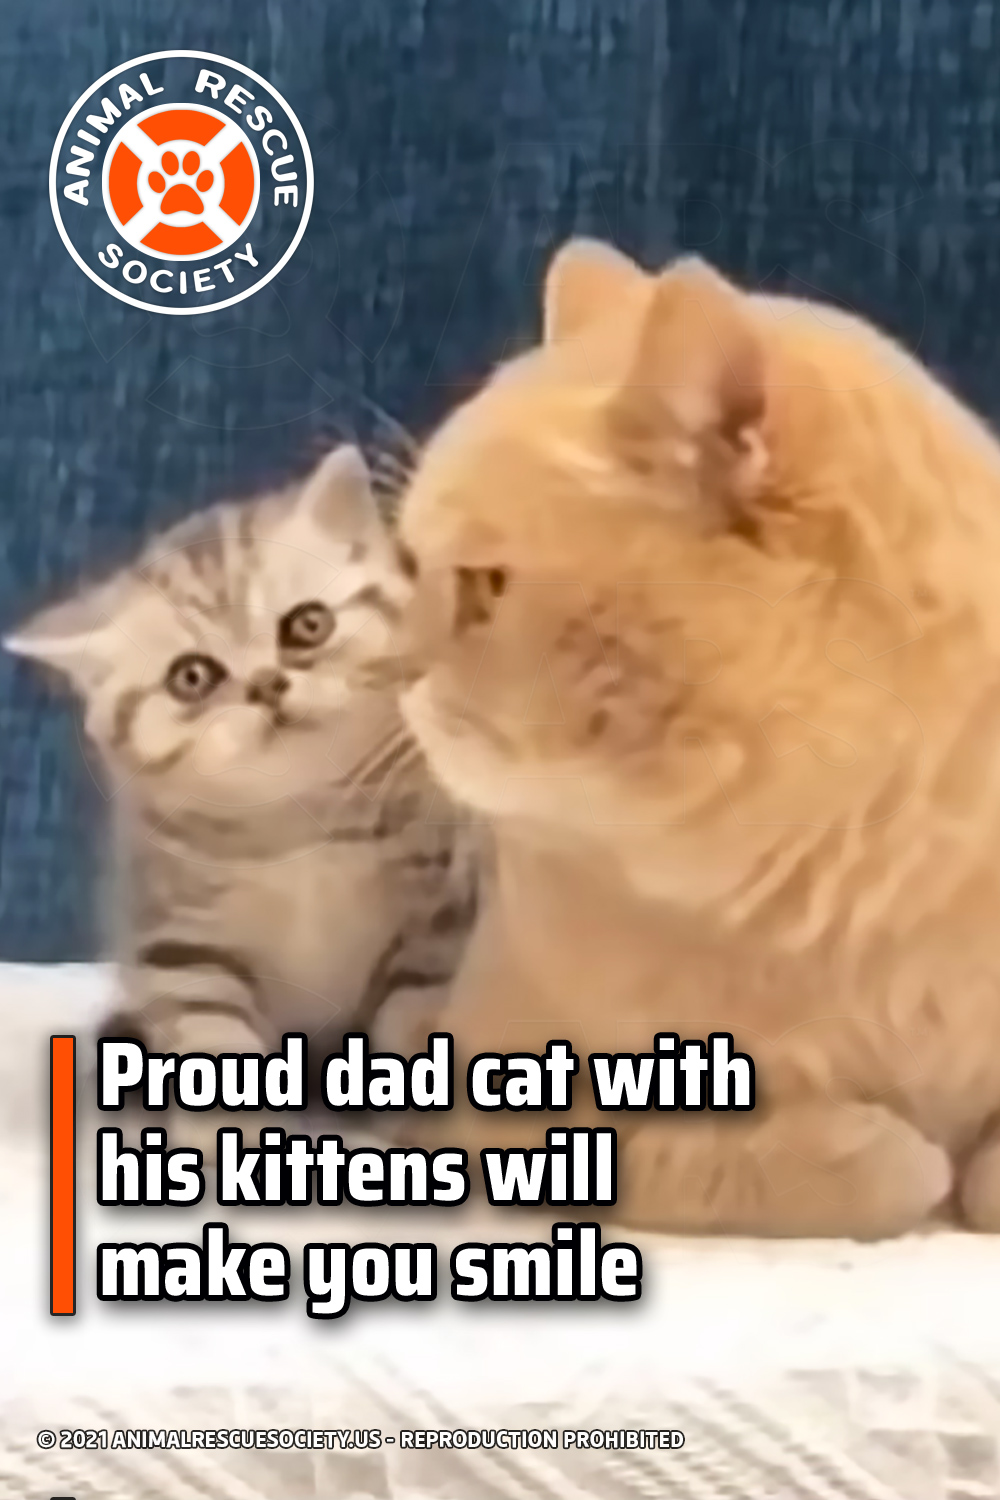 Proud dad cat with his kittens will make you smile